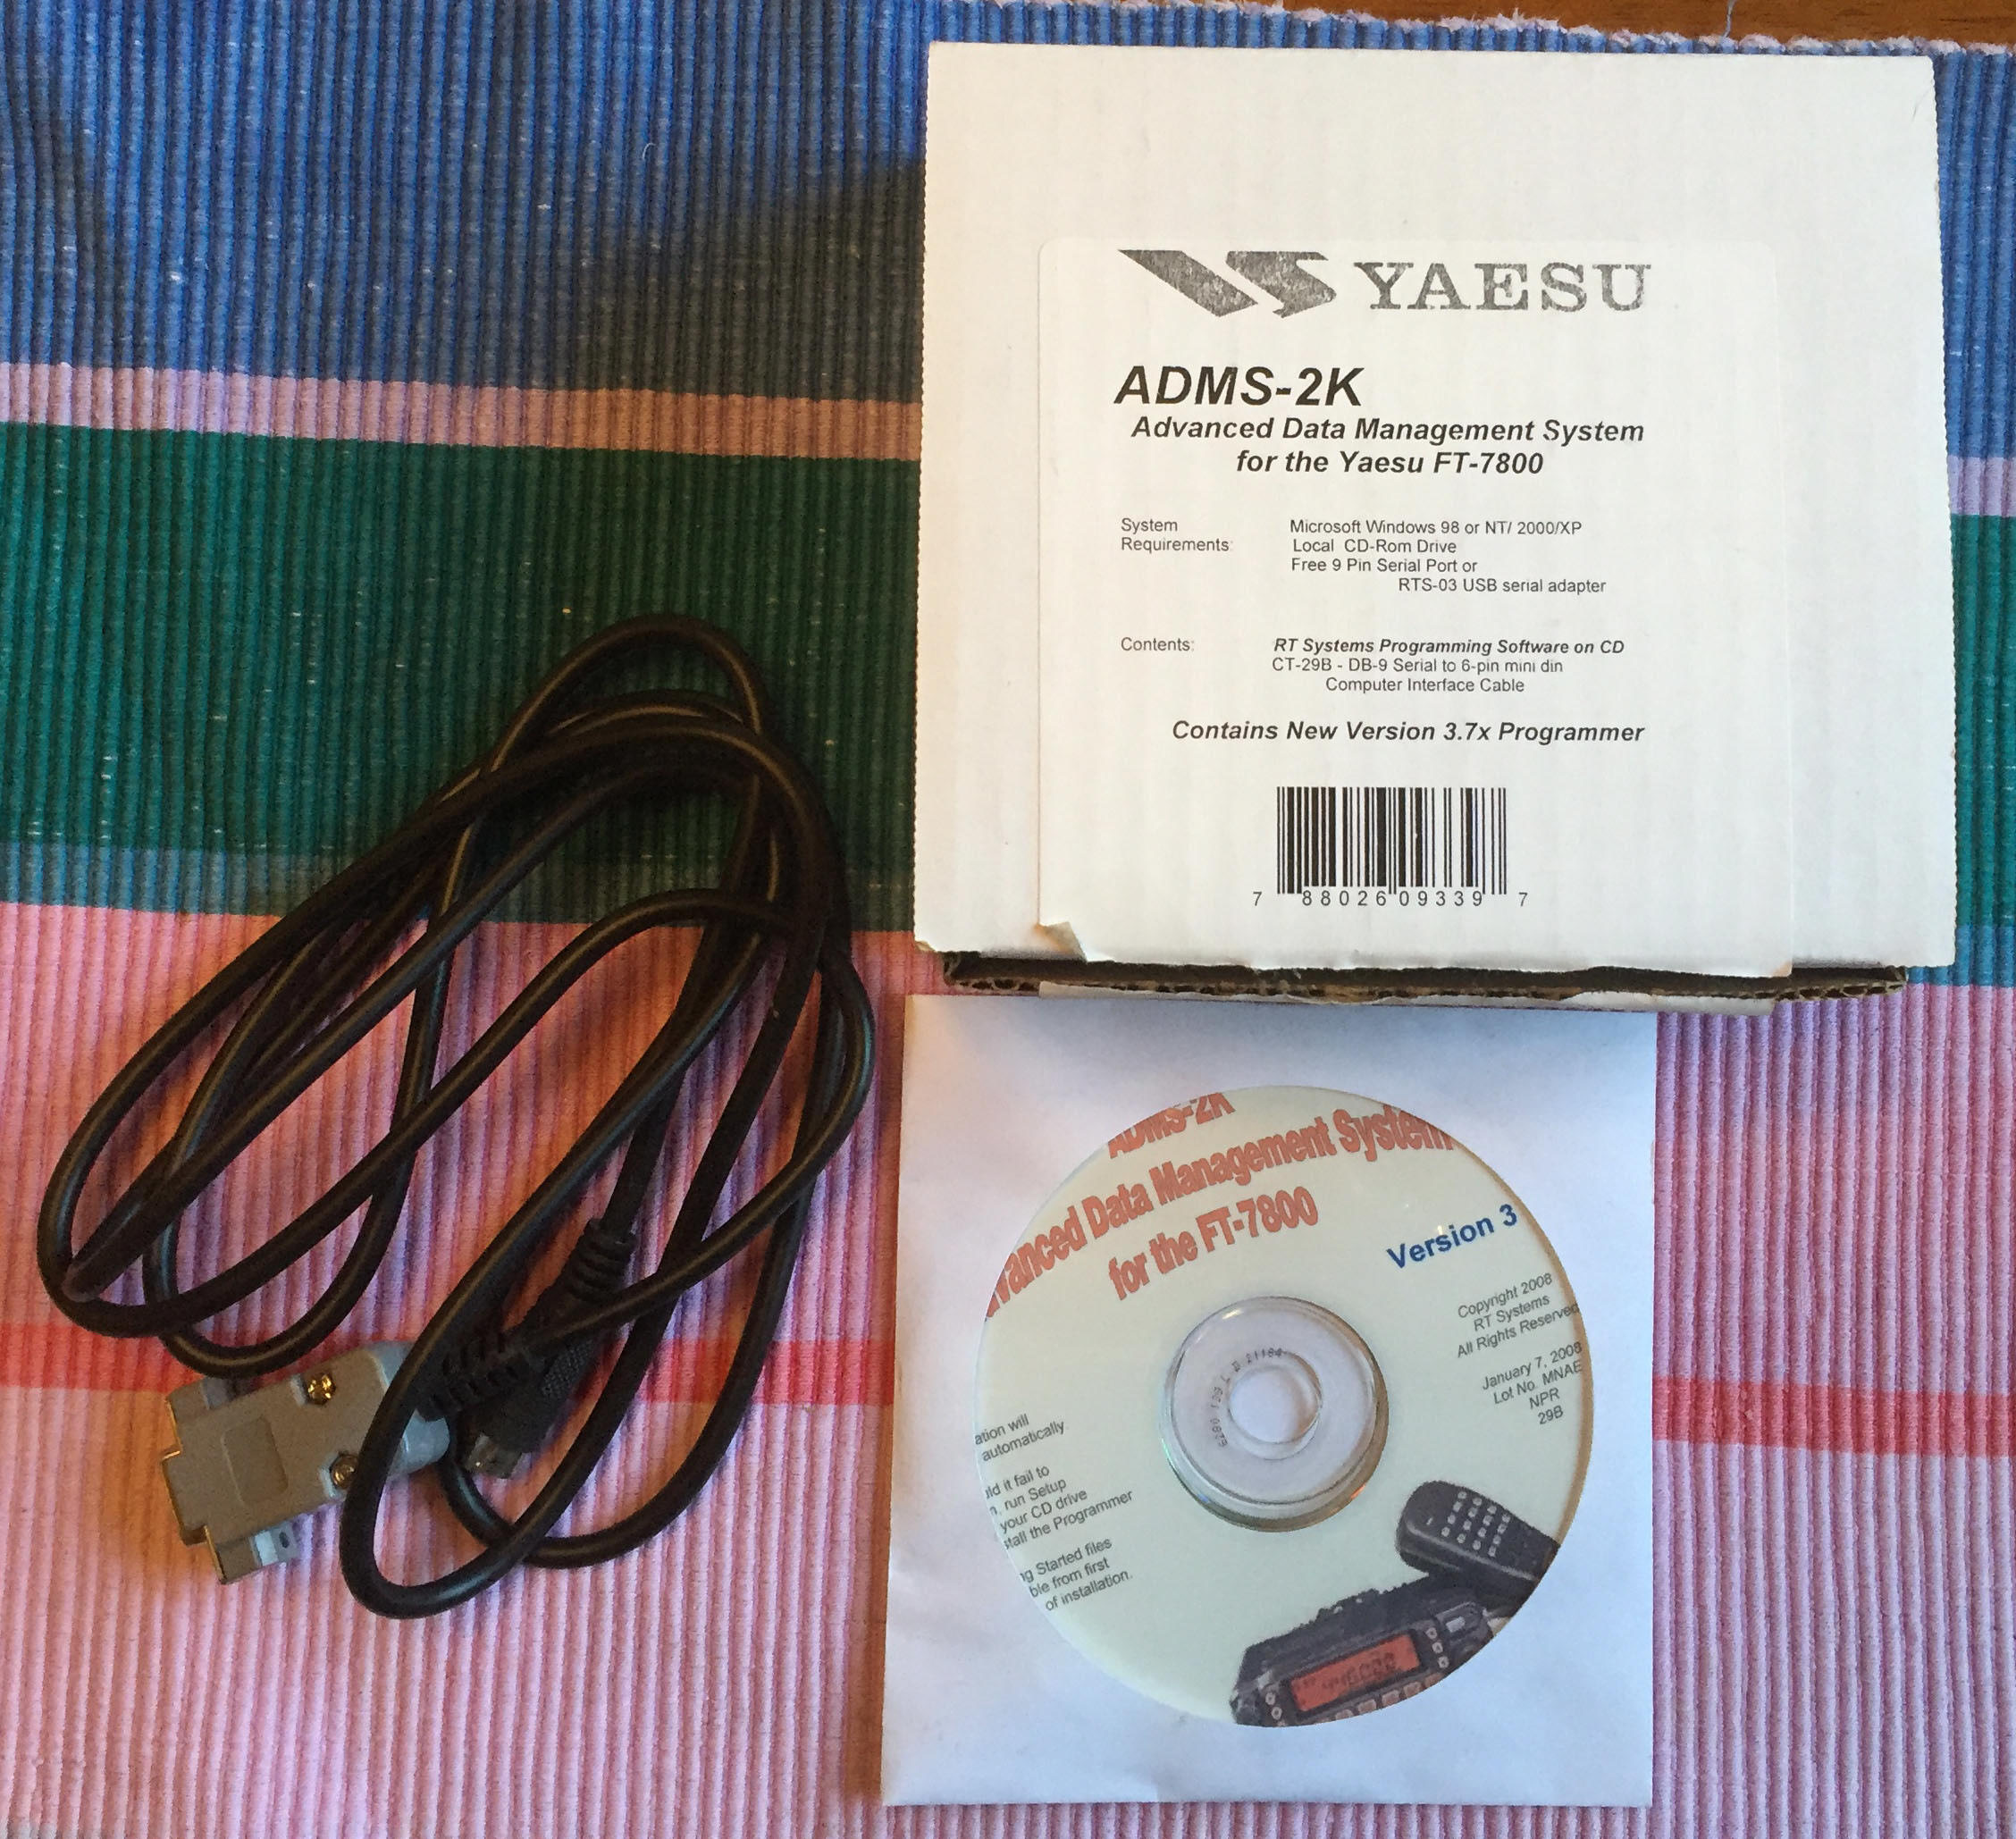 amateur radio station nawa adms 2k cloning kit for yaesu ft 7800 photo 16 2016 iphone 6